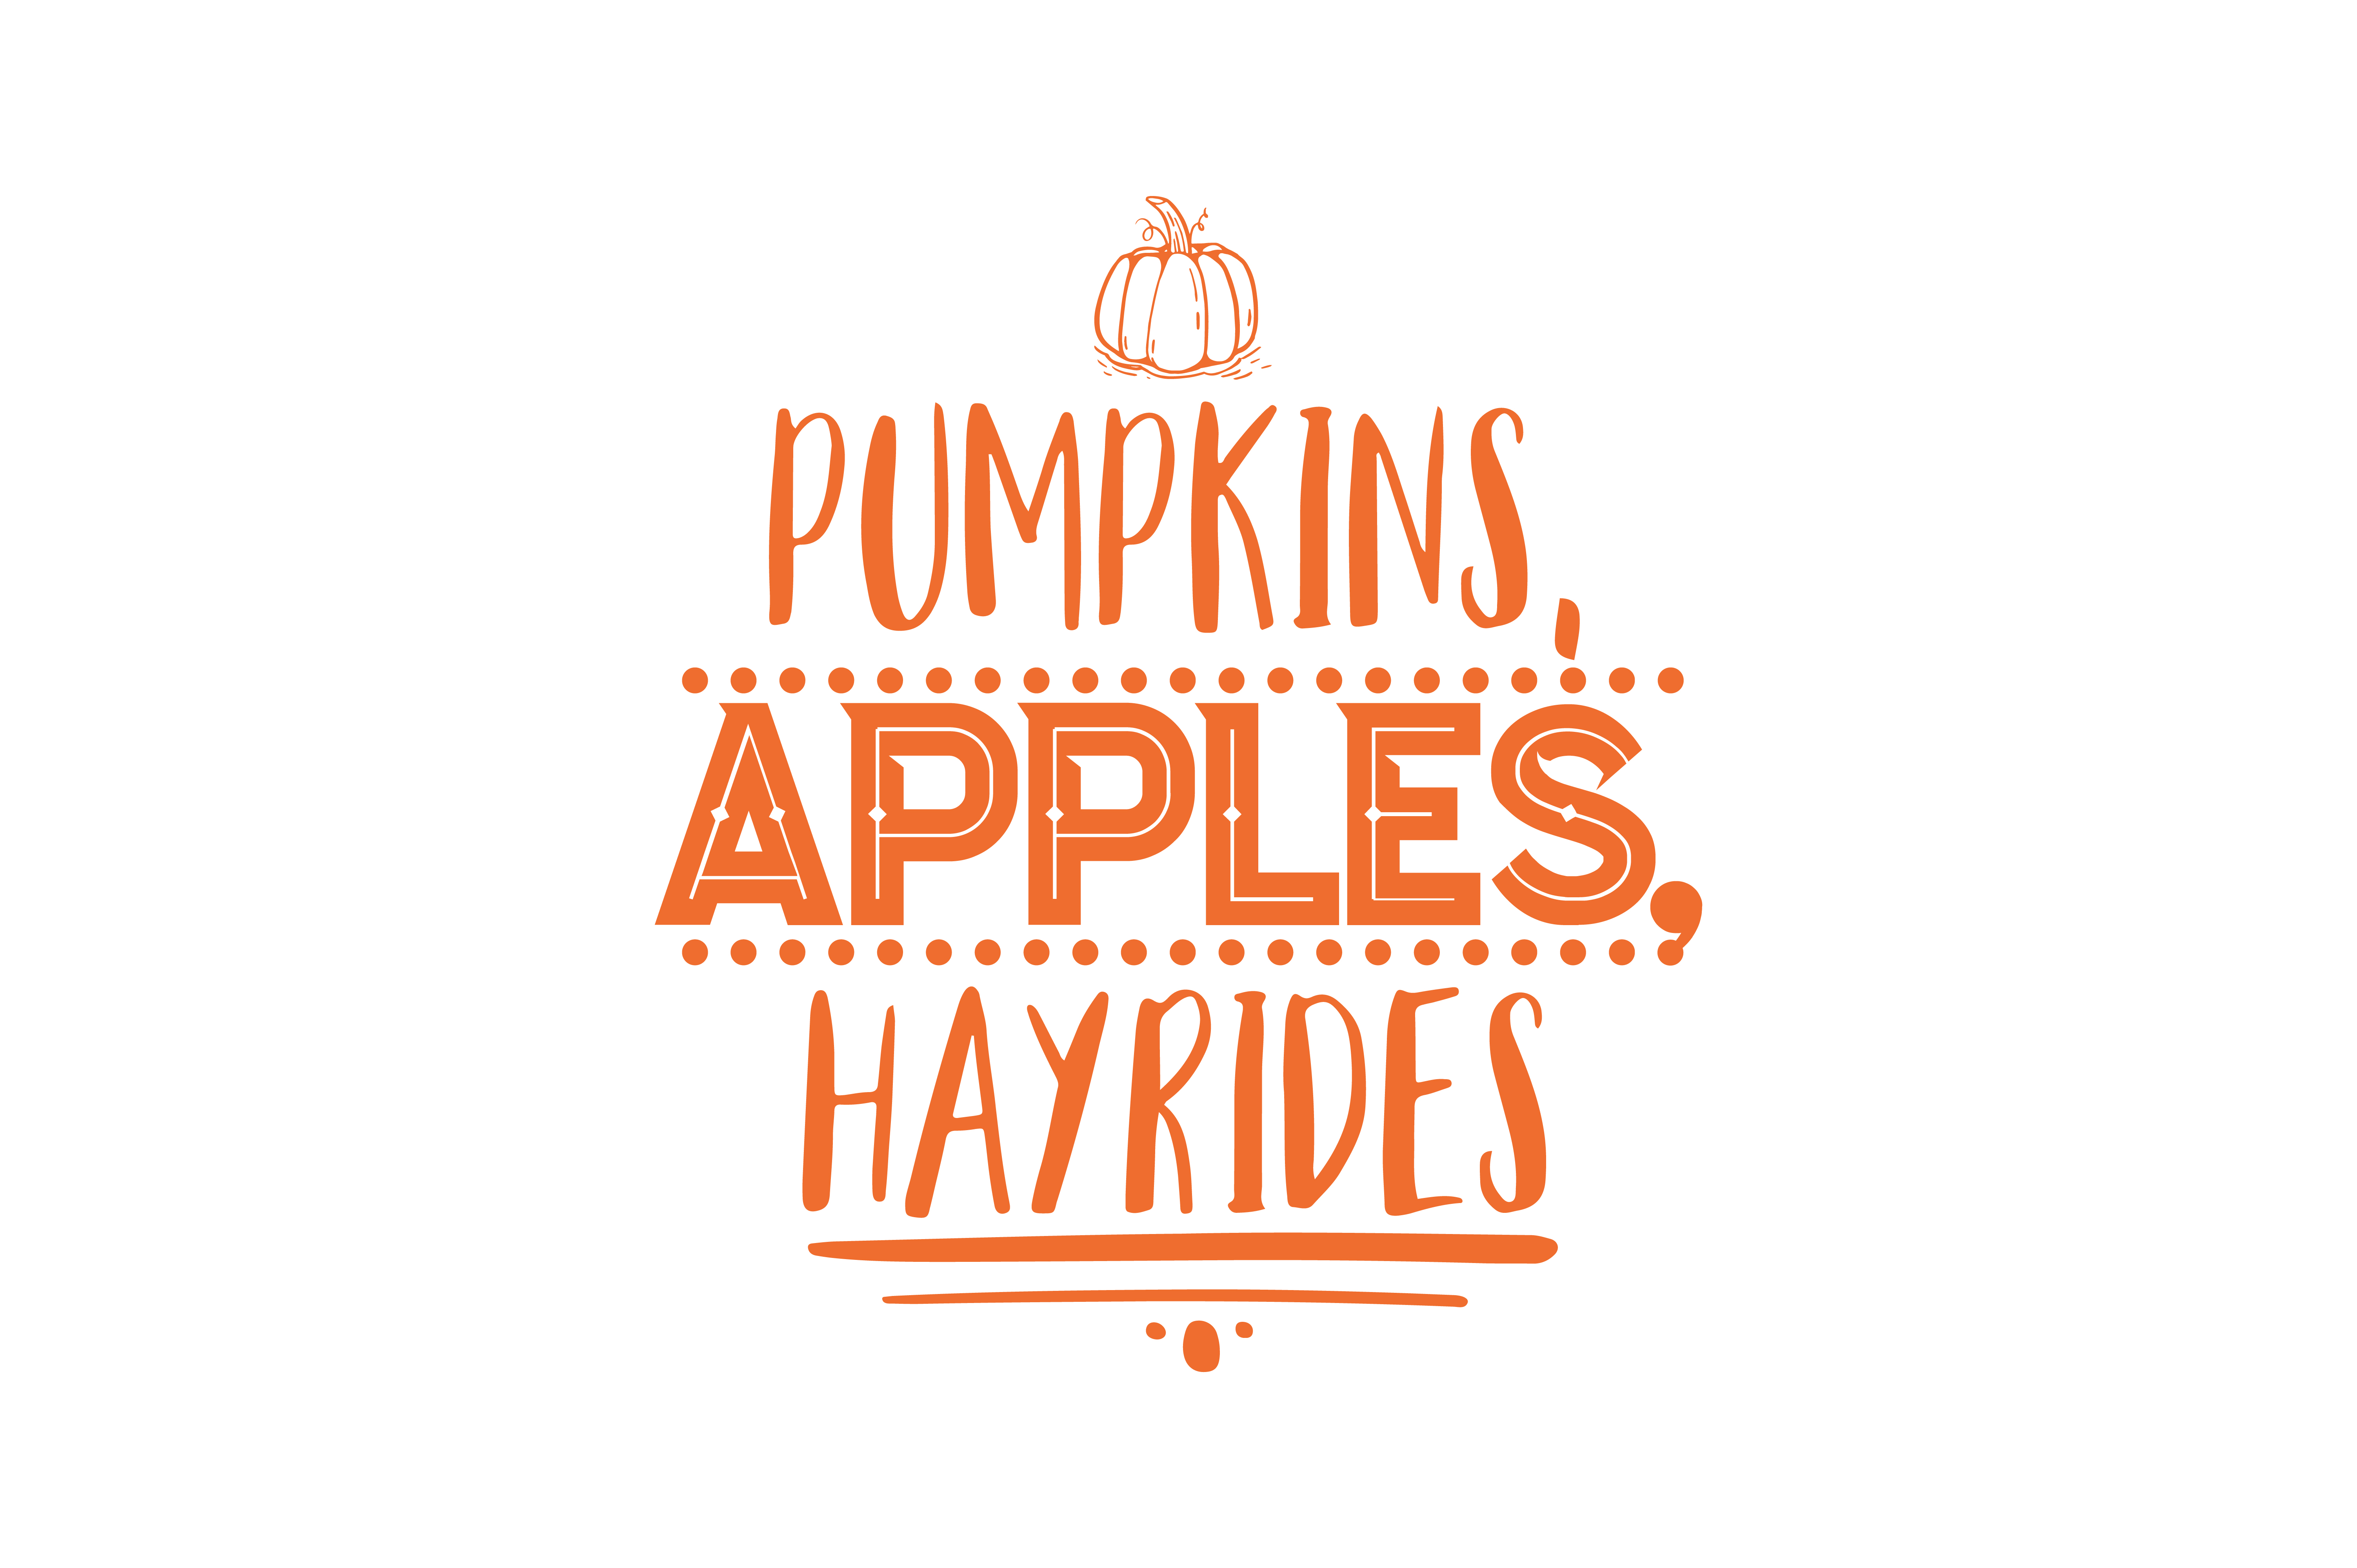 Pumpkins Apples Hayrides Quote Svg Cut Graphic By Thelucky Creative Fabrica